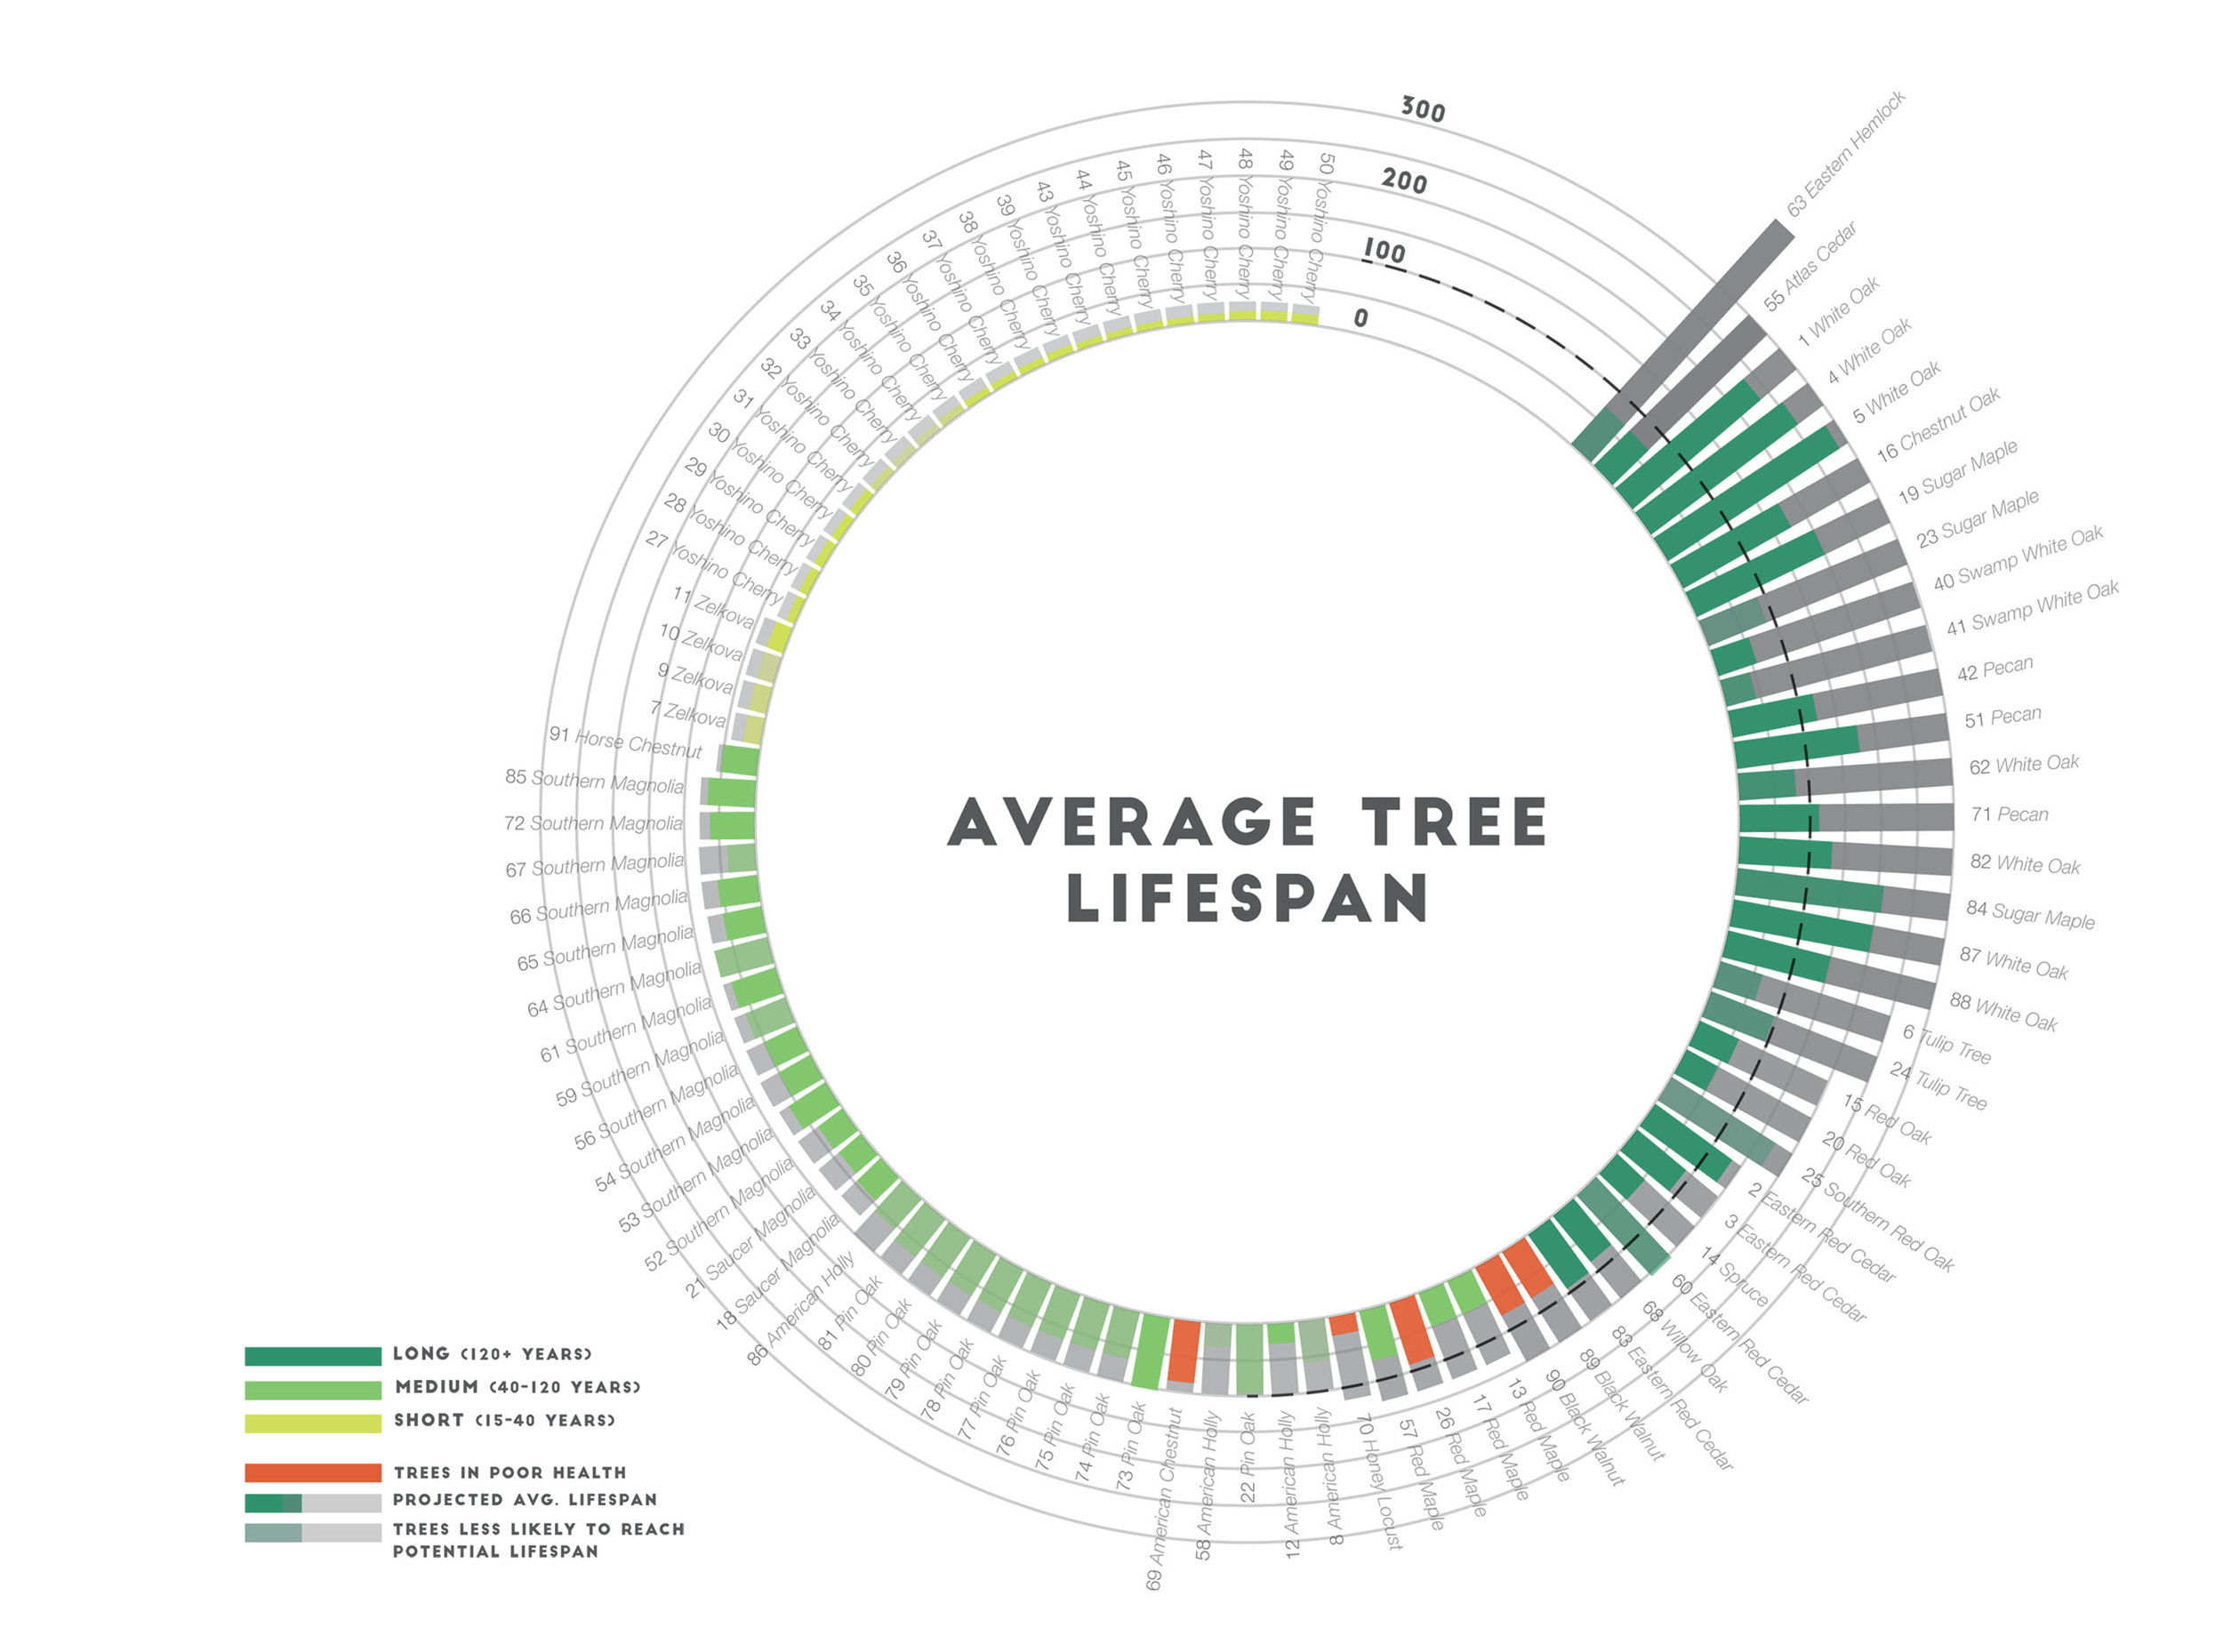 We documented nearly one hundred trees by species, size, presumed age, and health. This drawing shows the expected lifespan of the trees currently planted on campus and the life likely still left amongst the trees. Our conclusion was that the campus was largely planted with short-lived trees near the end of their lifespan.